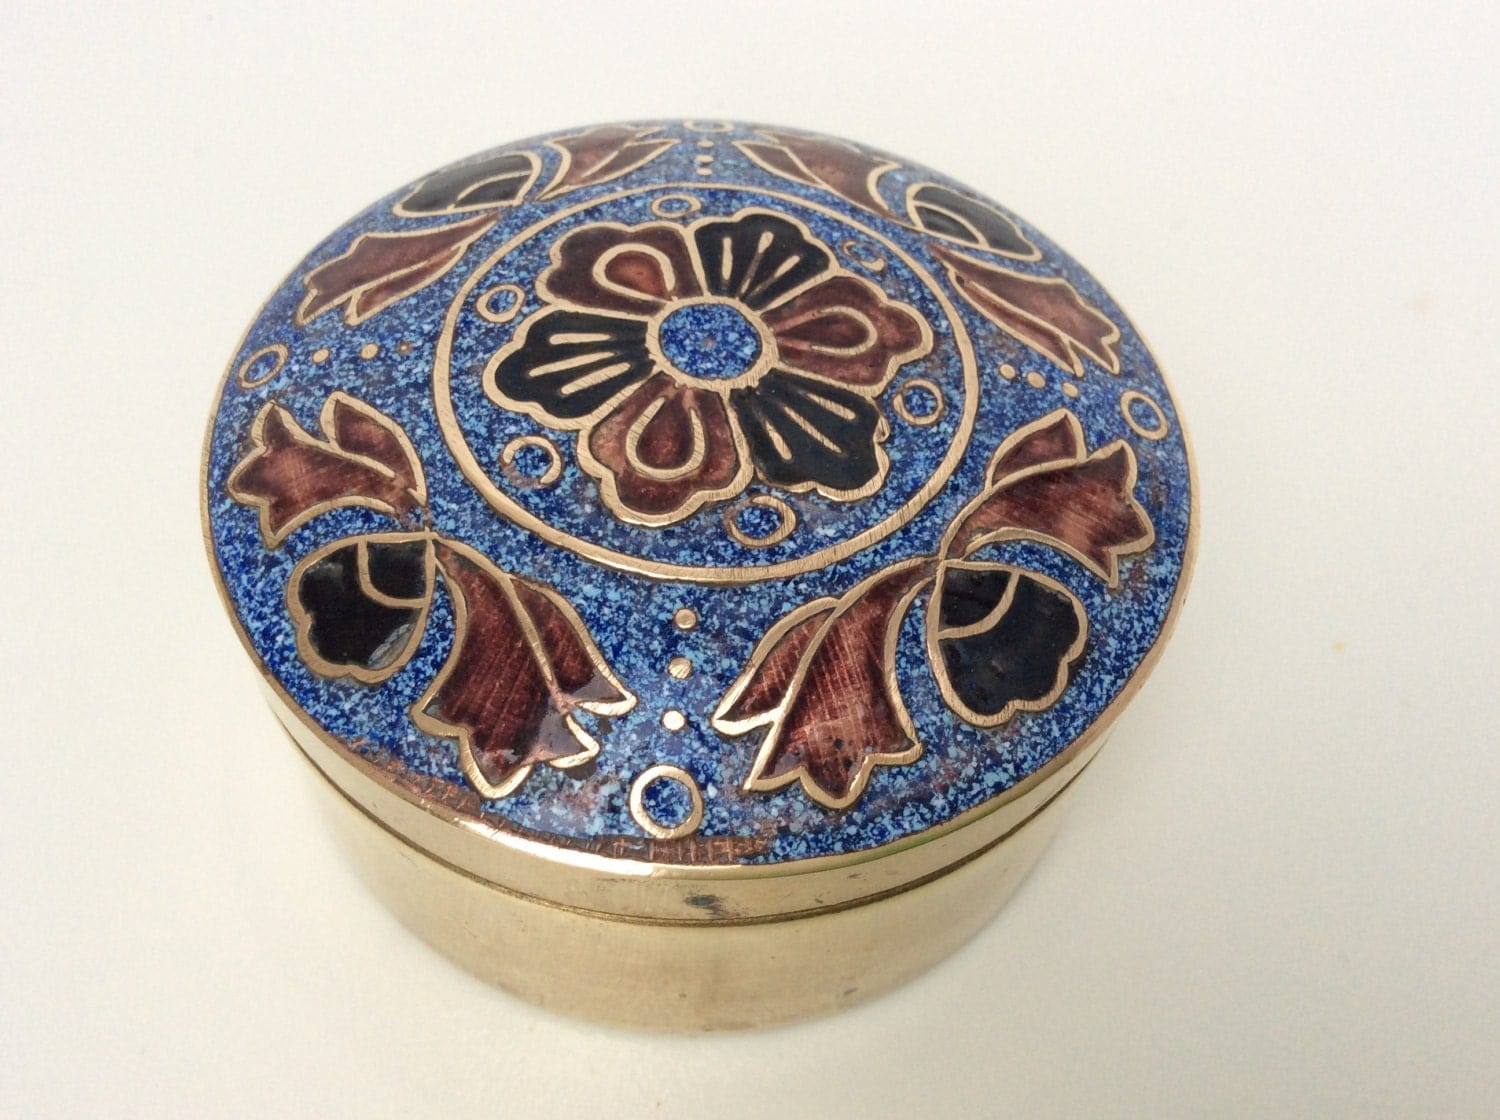 Vintage brass box small enamelled box inlaid brass lid engagement ring wedding ring gift box anniversary fancy gift box ring bearers box